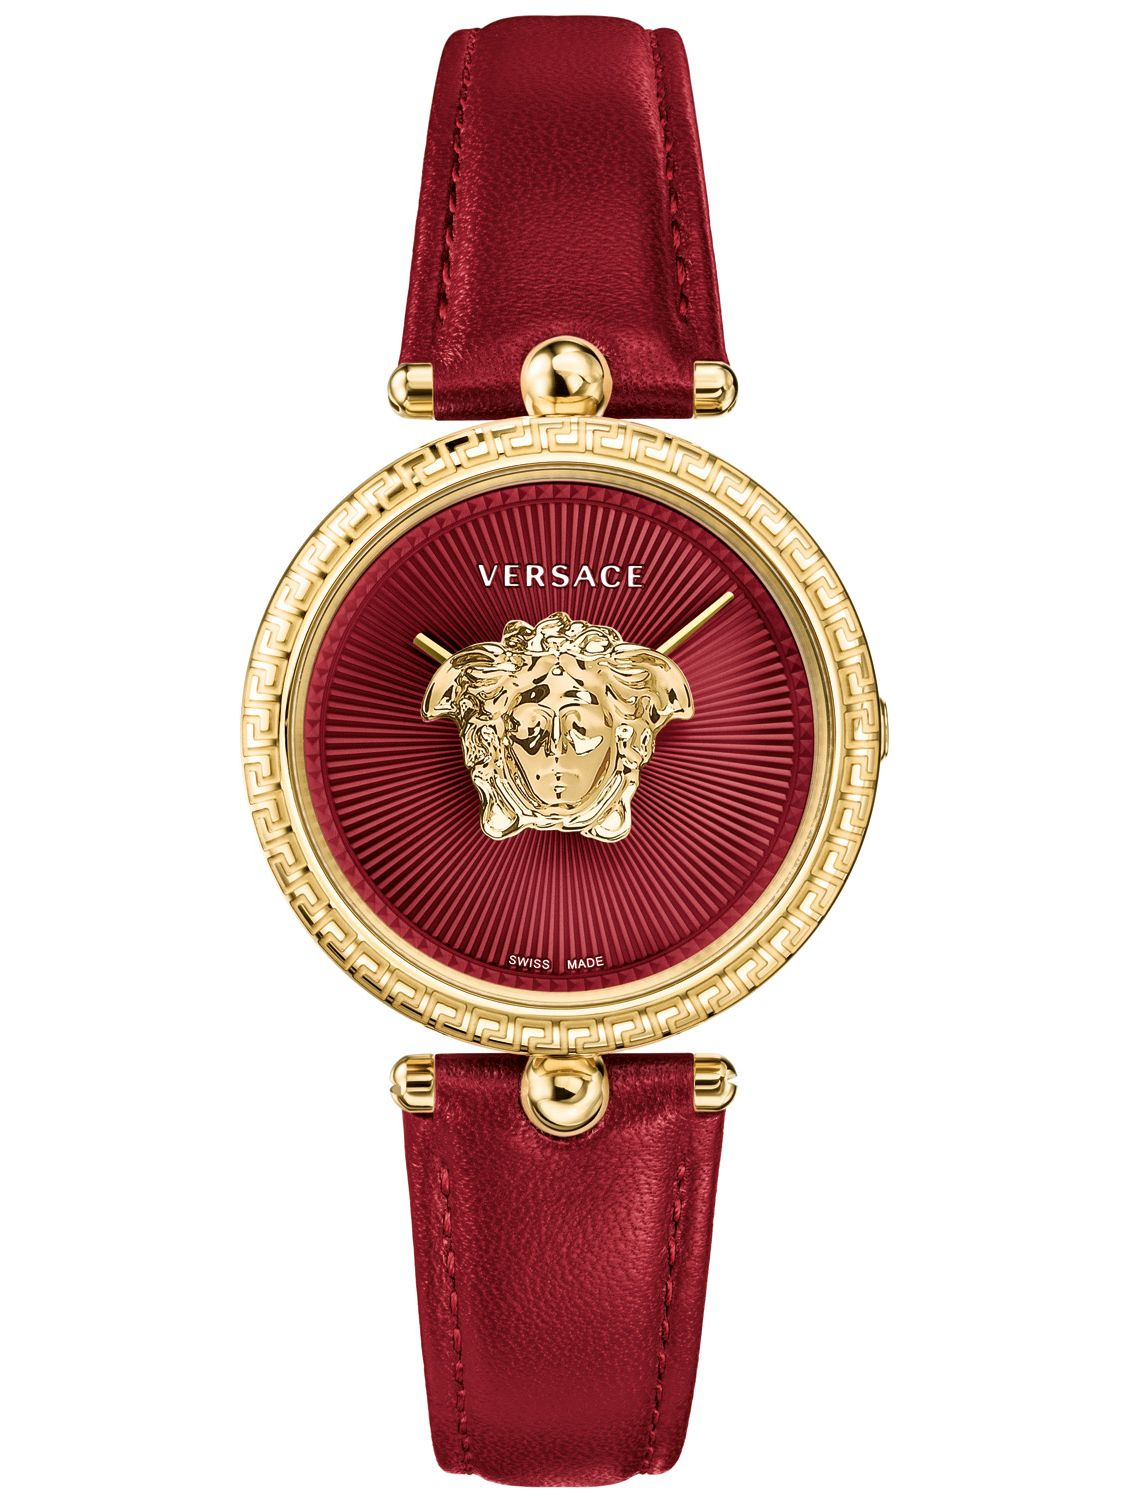 79f30d1d Versace VECQ00418 Ladies' Watch Palazzo Empire Red